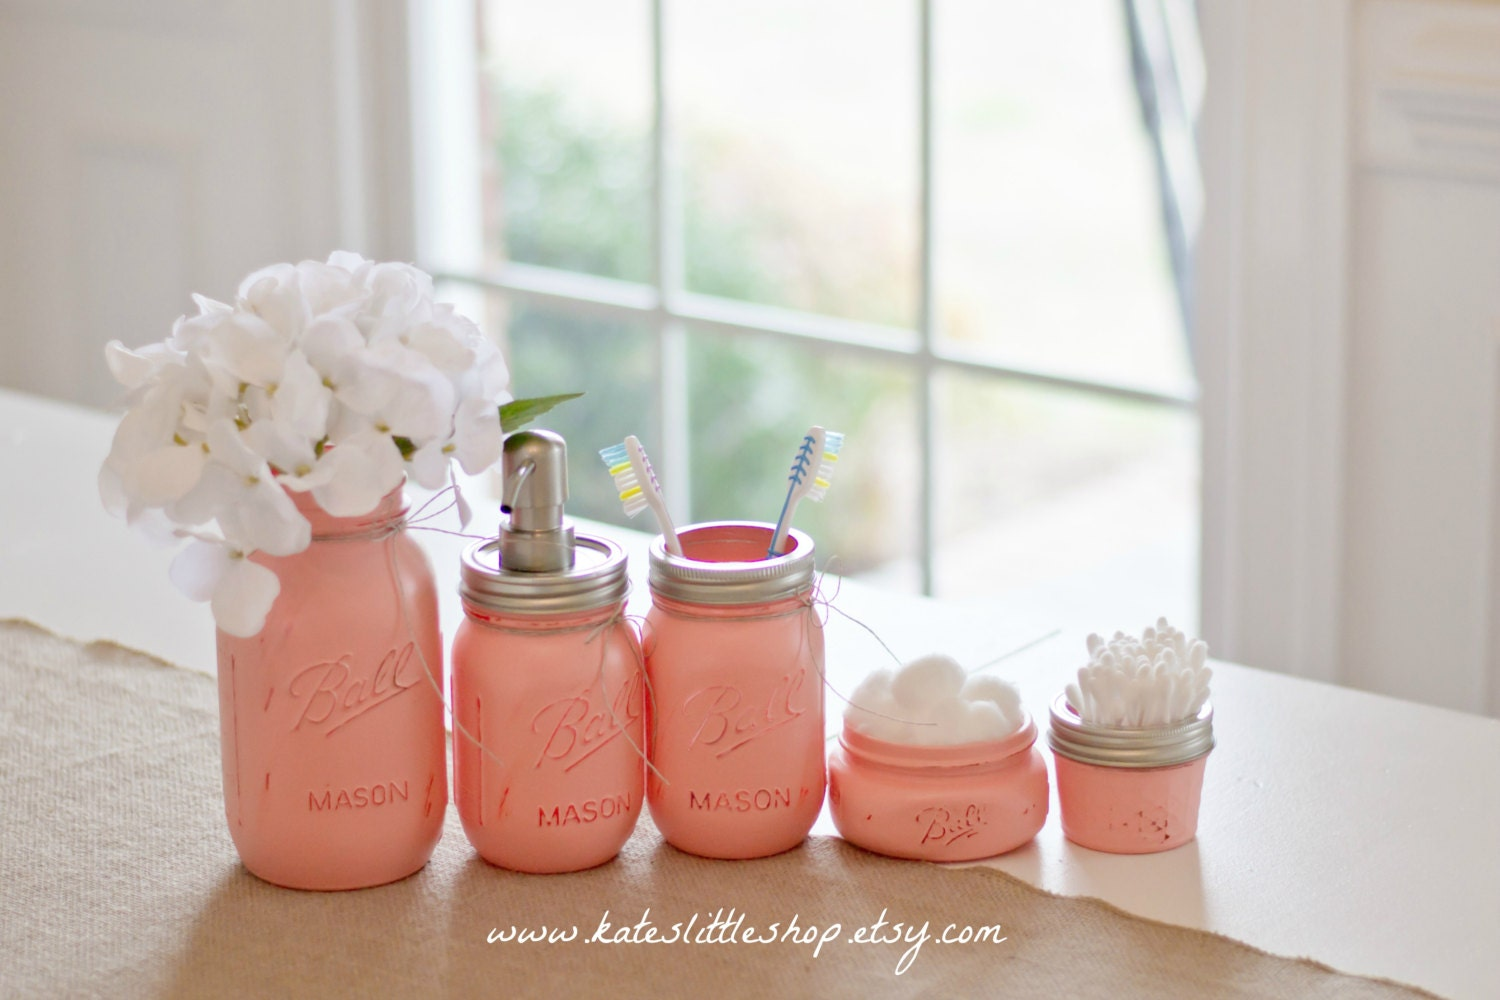 Mason Jar Bathroom Kit. PEACH. Ball Mason Jars. Rustic Home